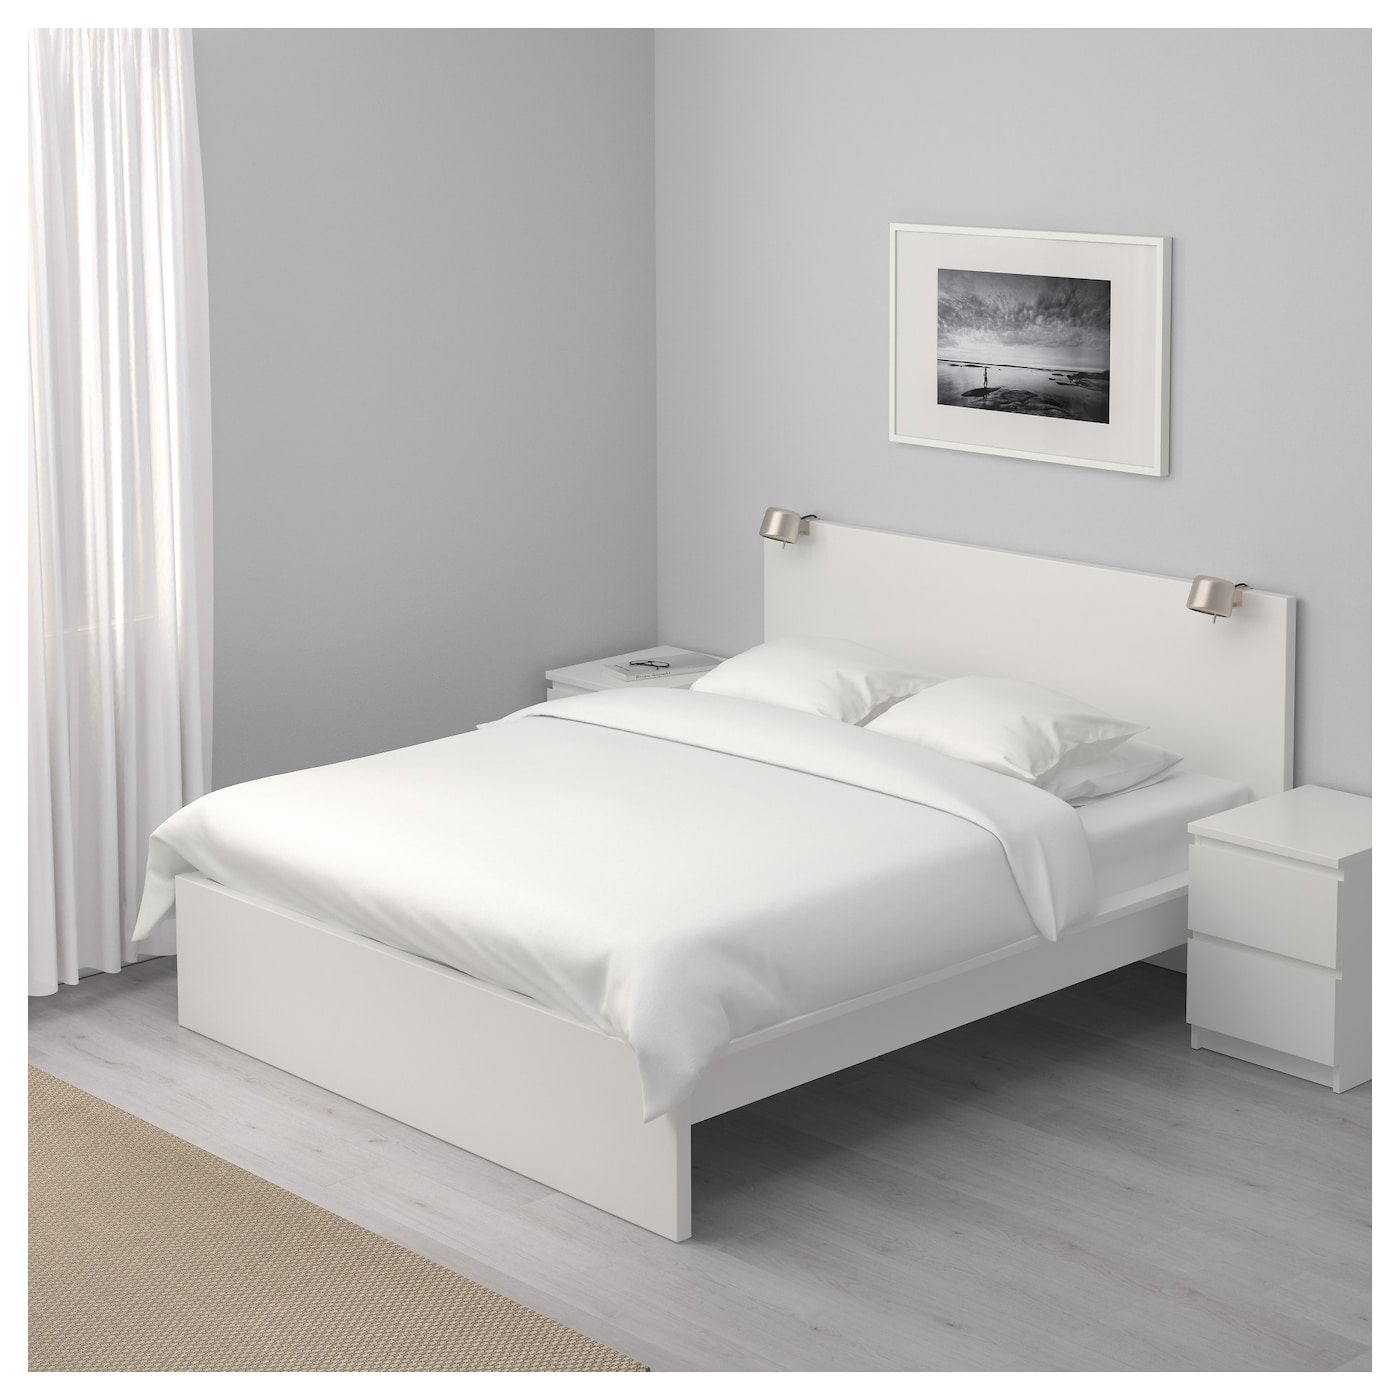 Malm Bed Frame High White Luroy Queen Ikea White Bed Frame Malm Bed Frame Malm Bed